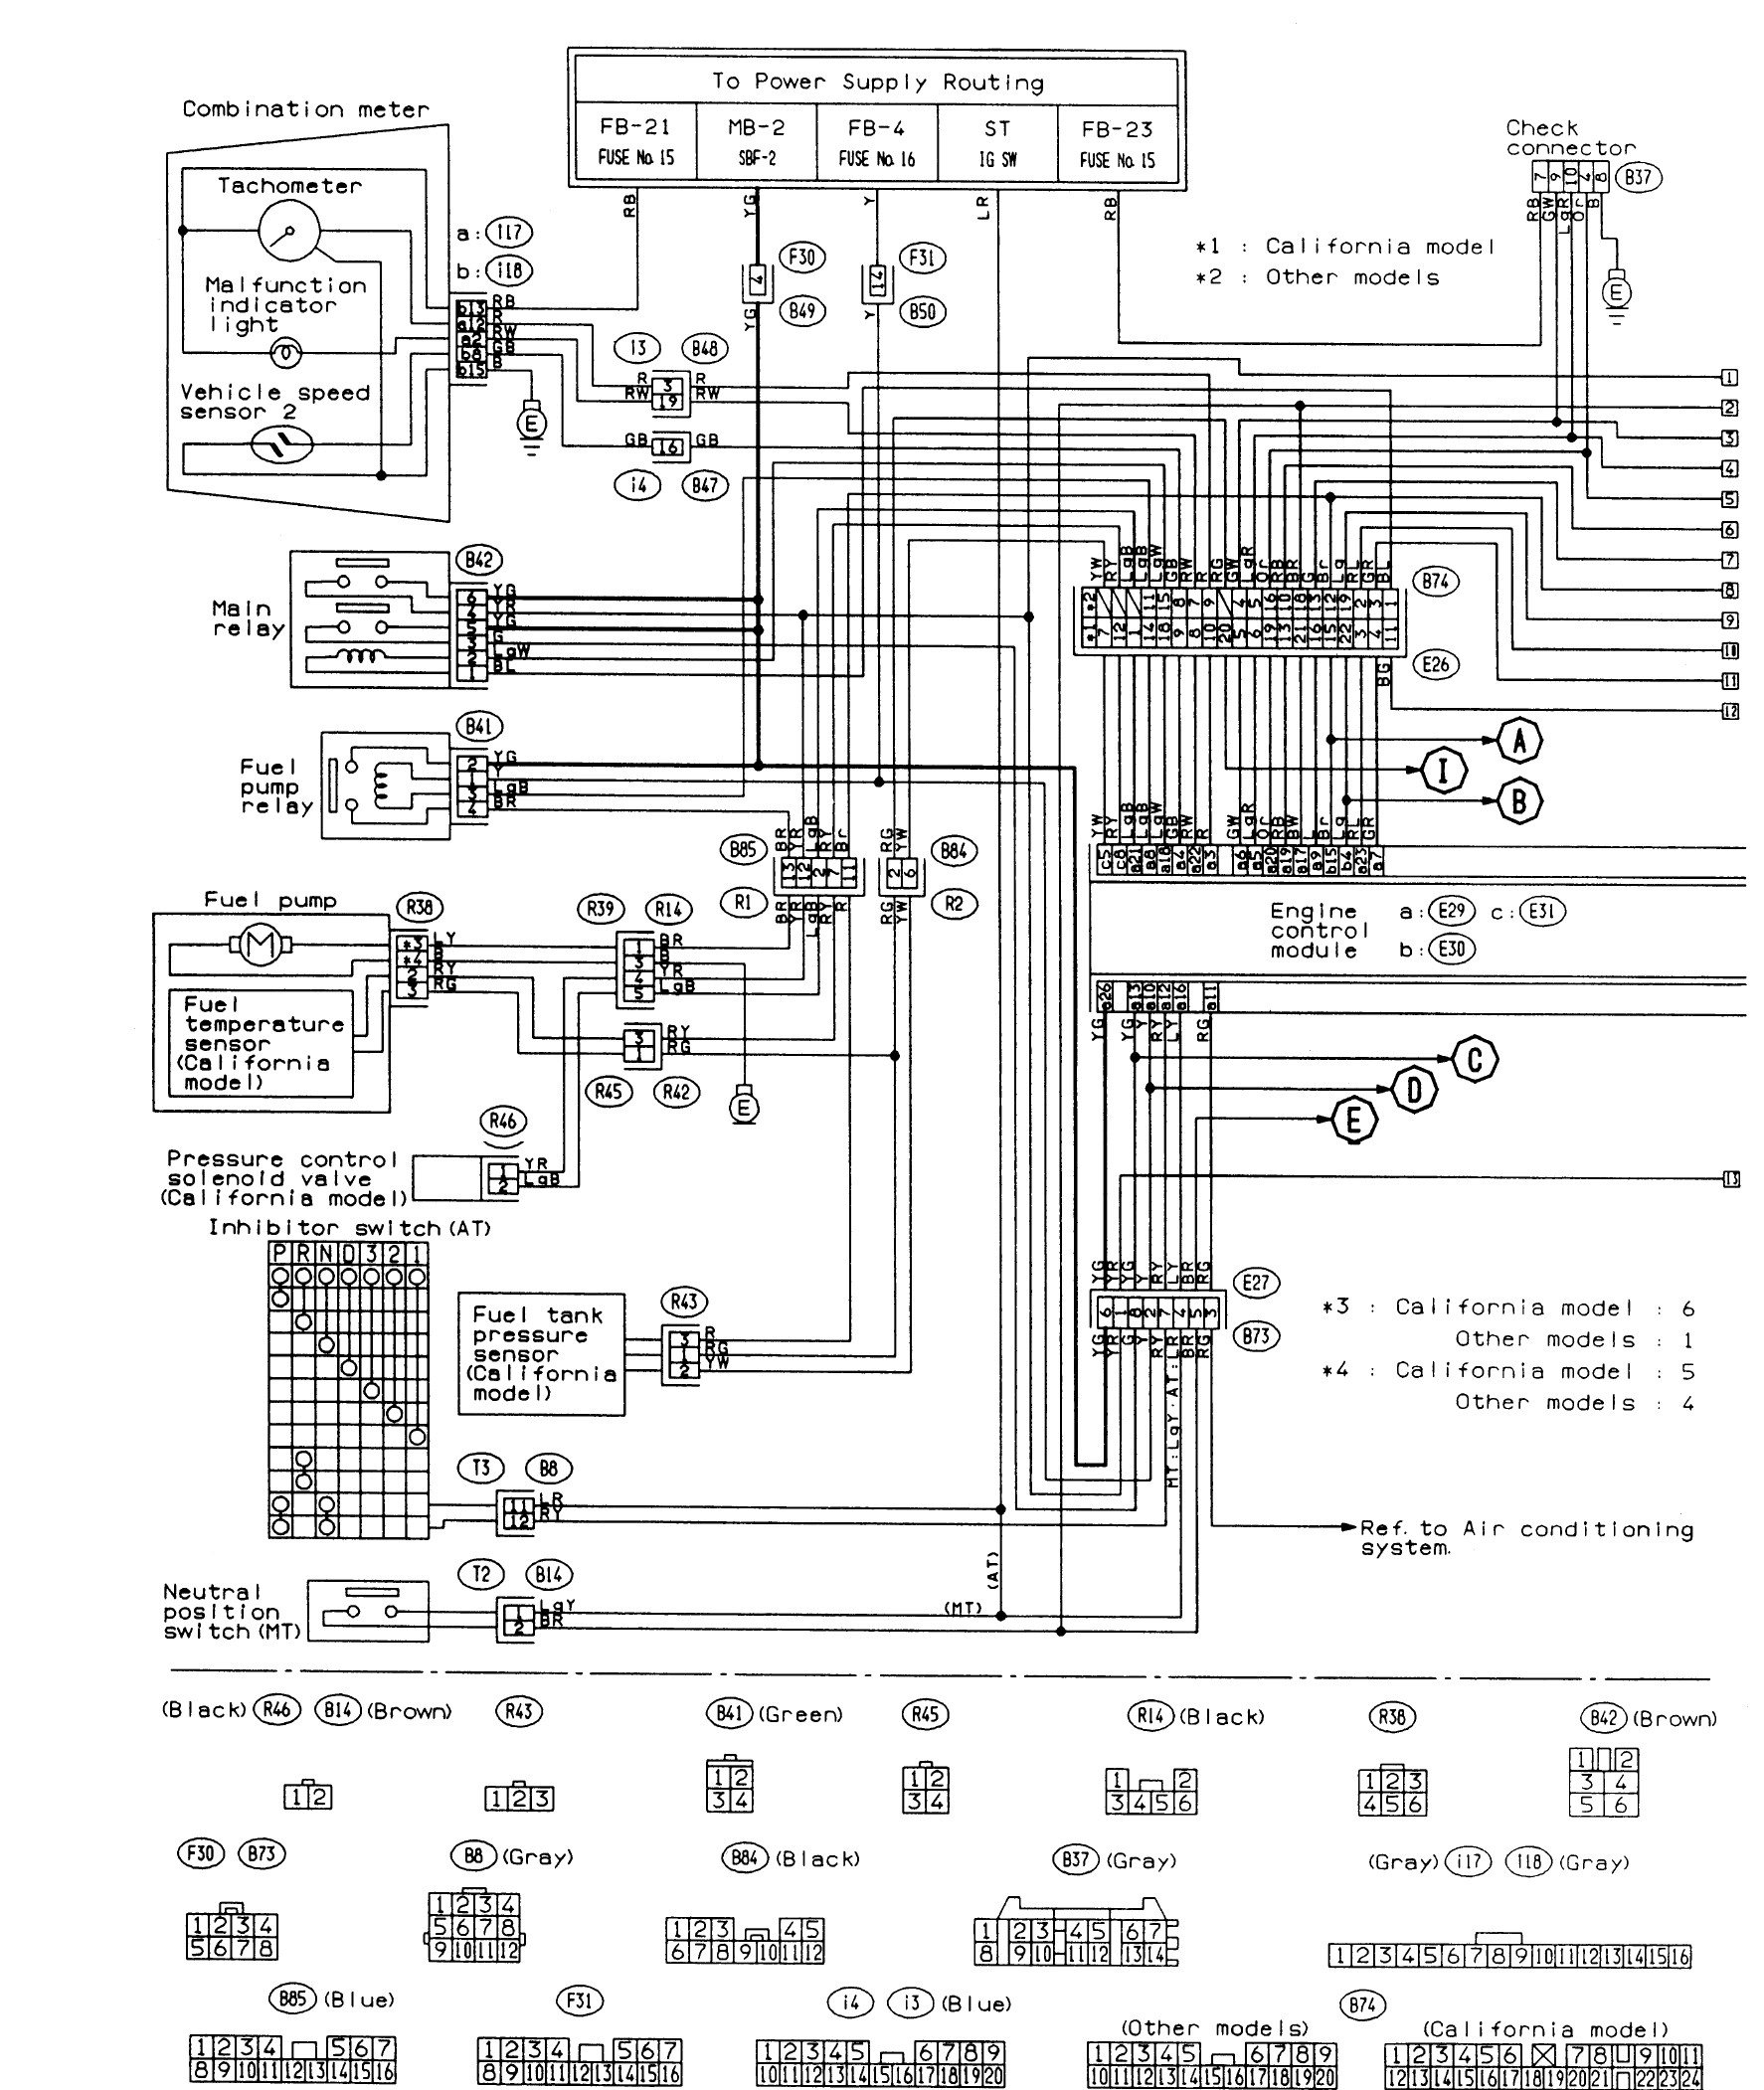 hight resolution of connecting rod engine diagram on 2002 subaru wrx engine diagram subaru 6 cylinder engine diagram